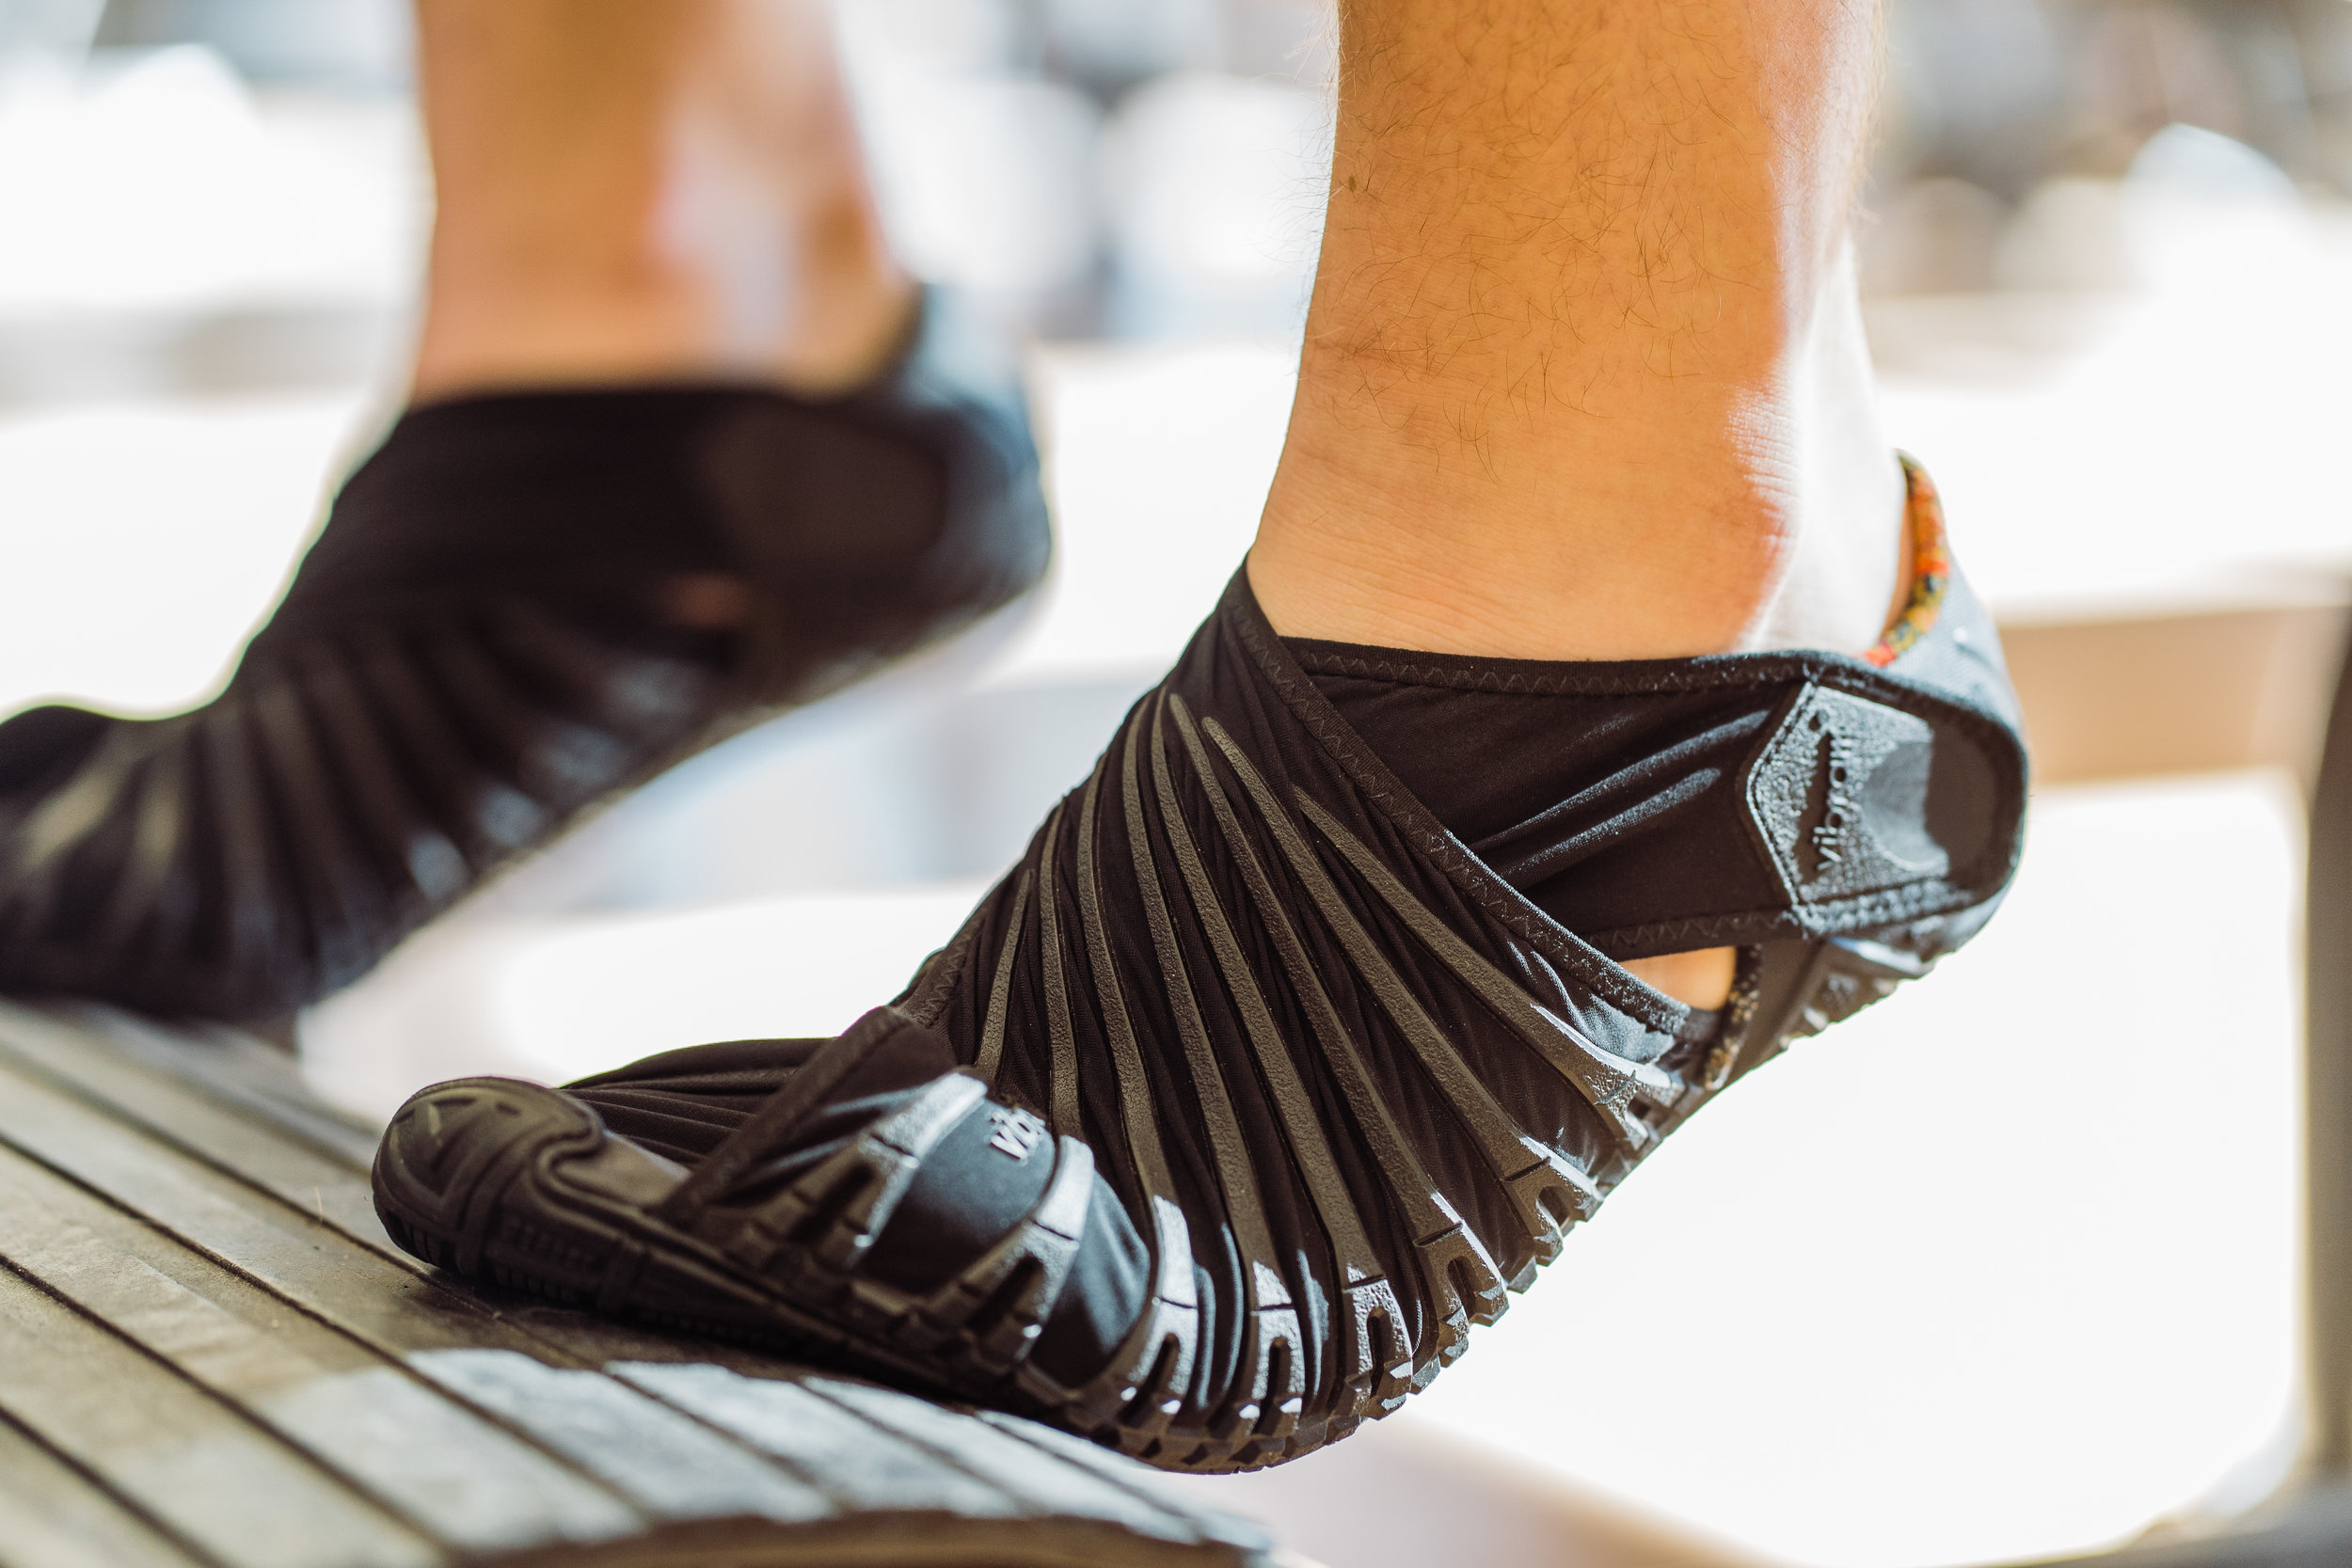 Vibram Furoshiki - From the gym, to the river, to the campsite, this Japanese inspired, Italian designed shoe, delivers the versatility Durangotangs need!Uses: Gym, Water, Everyday, Ninja ActivitiesModel/PhotogRAPHY: Nathan Scott/Cole Davis